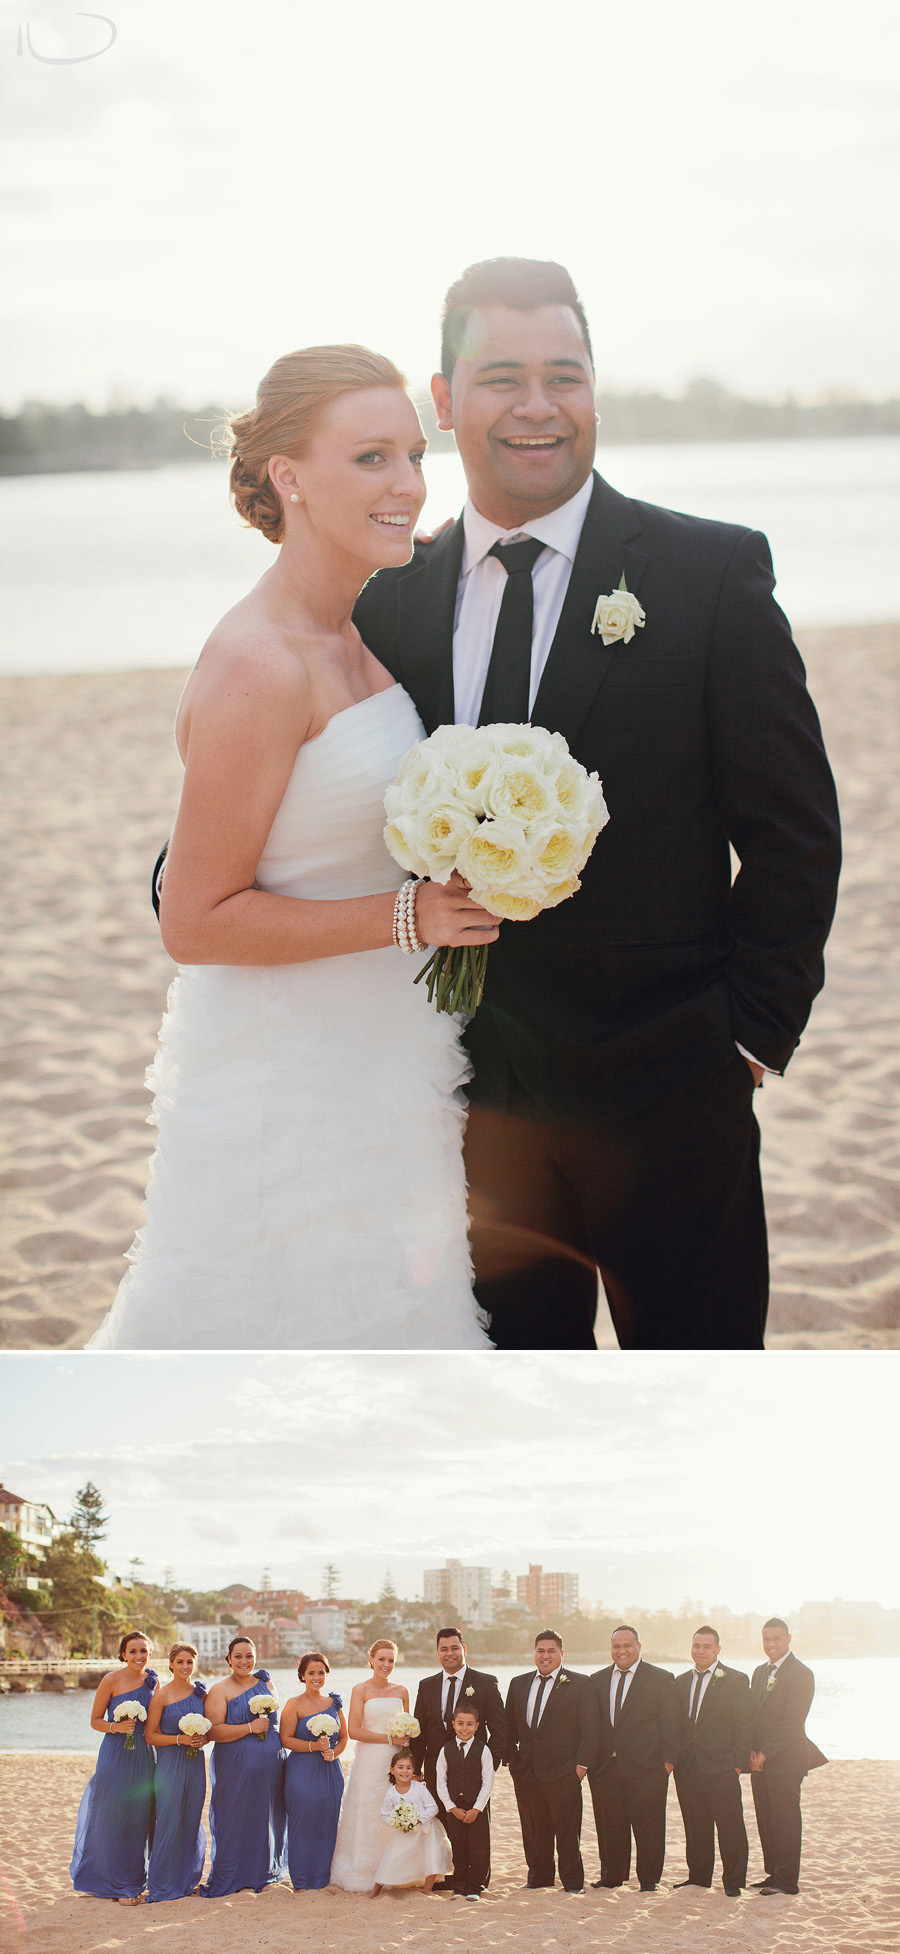 Sydney Wedding Photography: Bride & Groom on beach